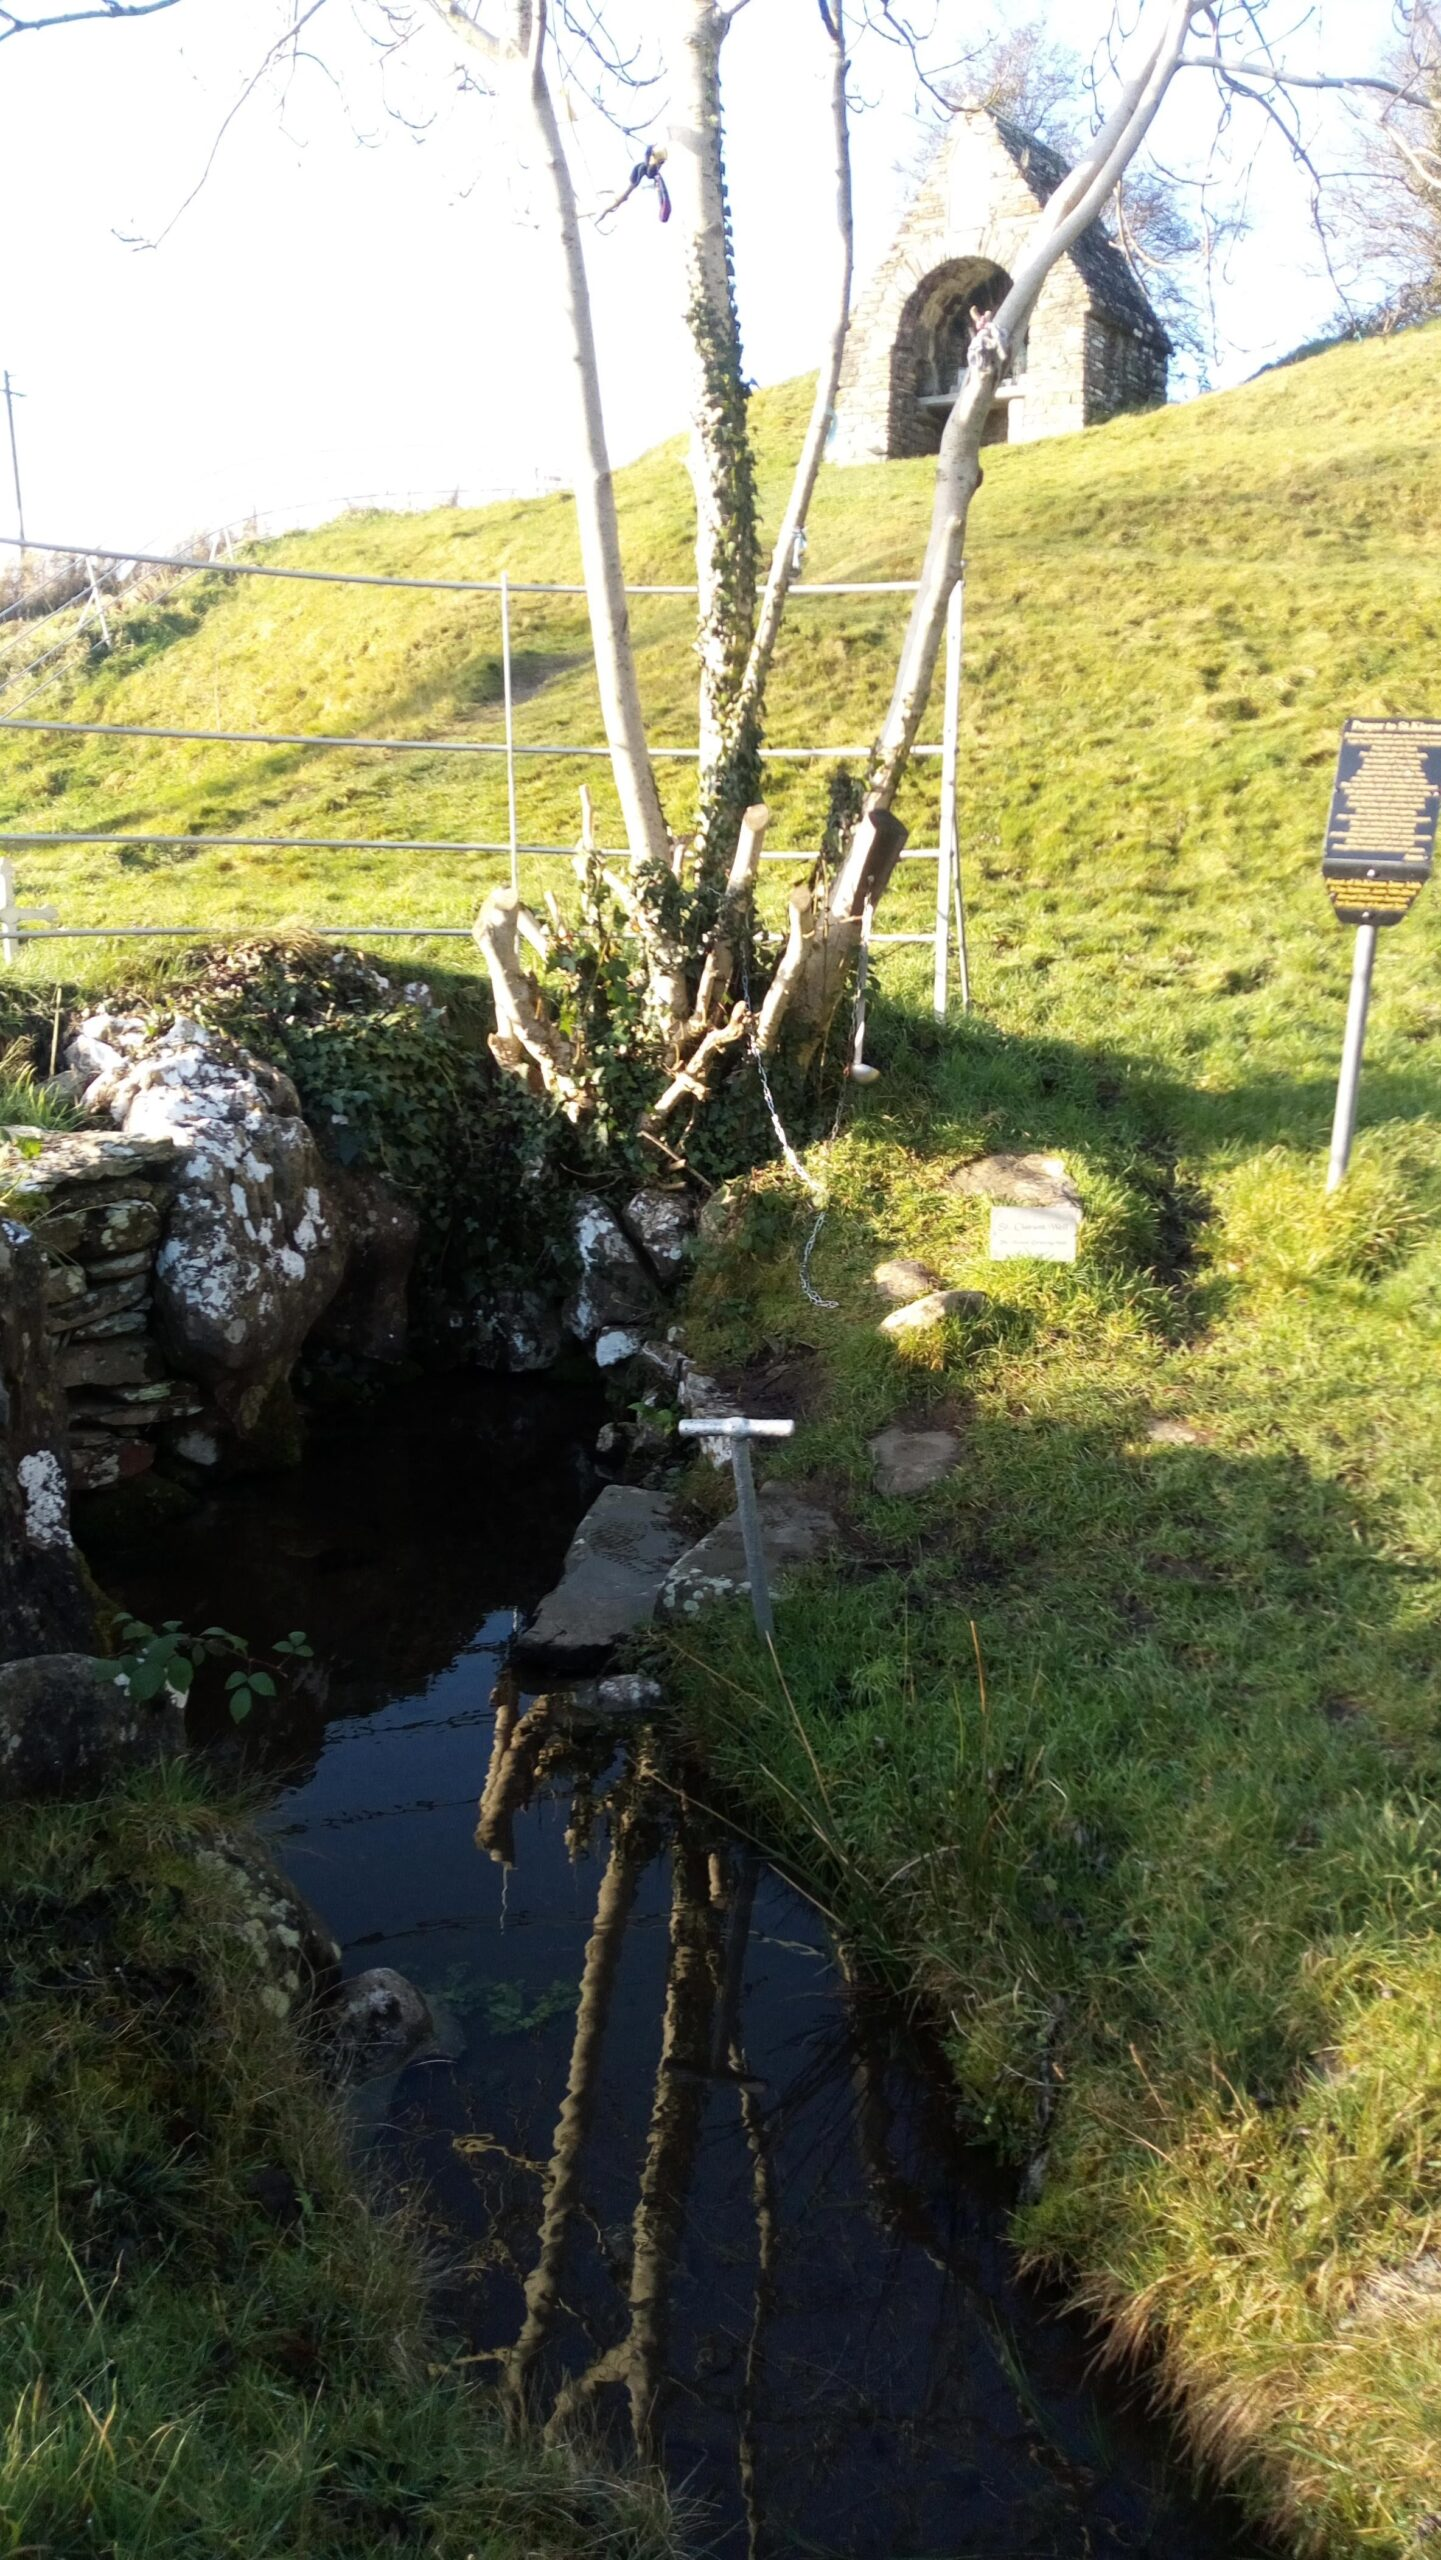 St Keeran's Well, Co. Meath. Rags hang from the tree and there is a ladle attached to a chain to retrieve the water. By Conchúr Mag Eacháin (photographer).